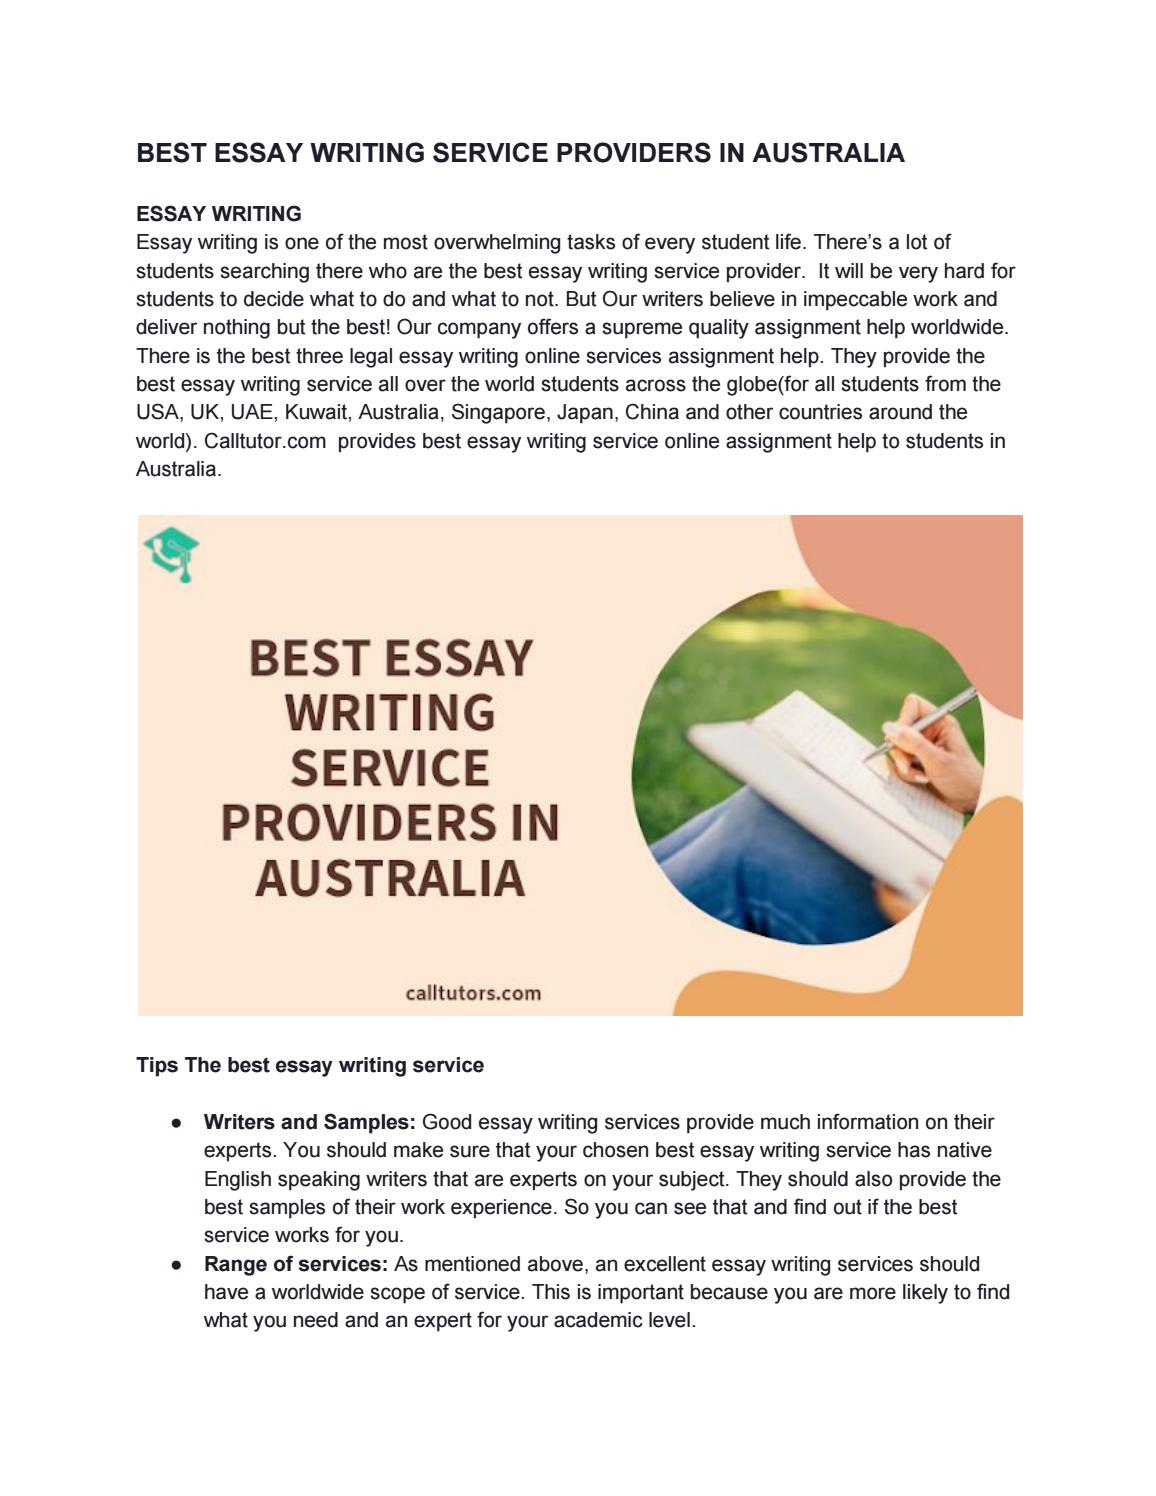 BEST ESSAY WRITING SERVICE PROVIDERS IN AUSTRALIA By